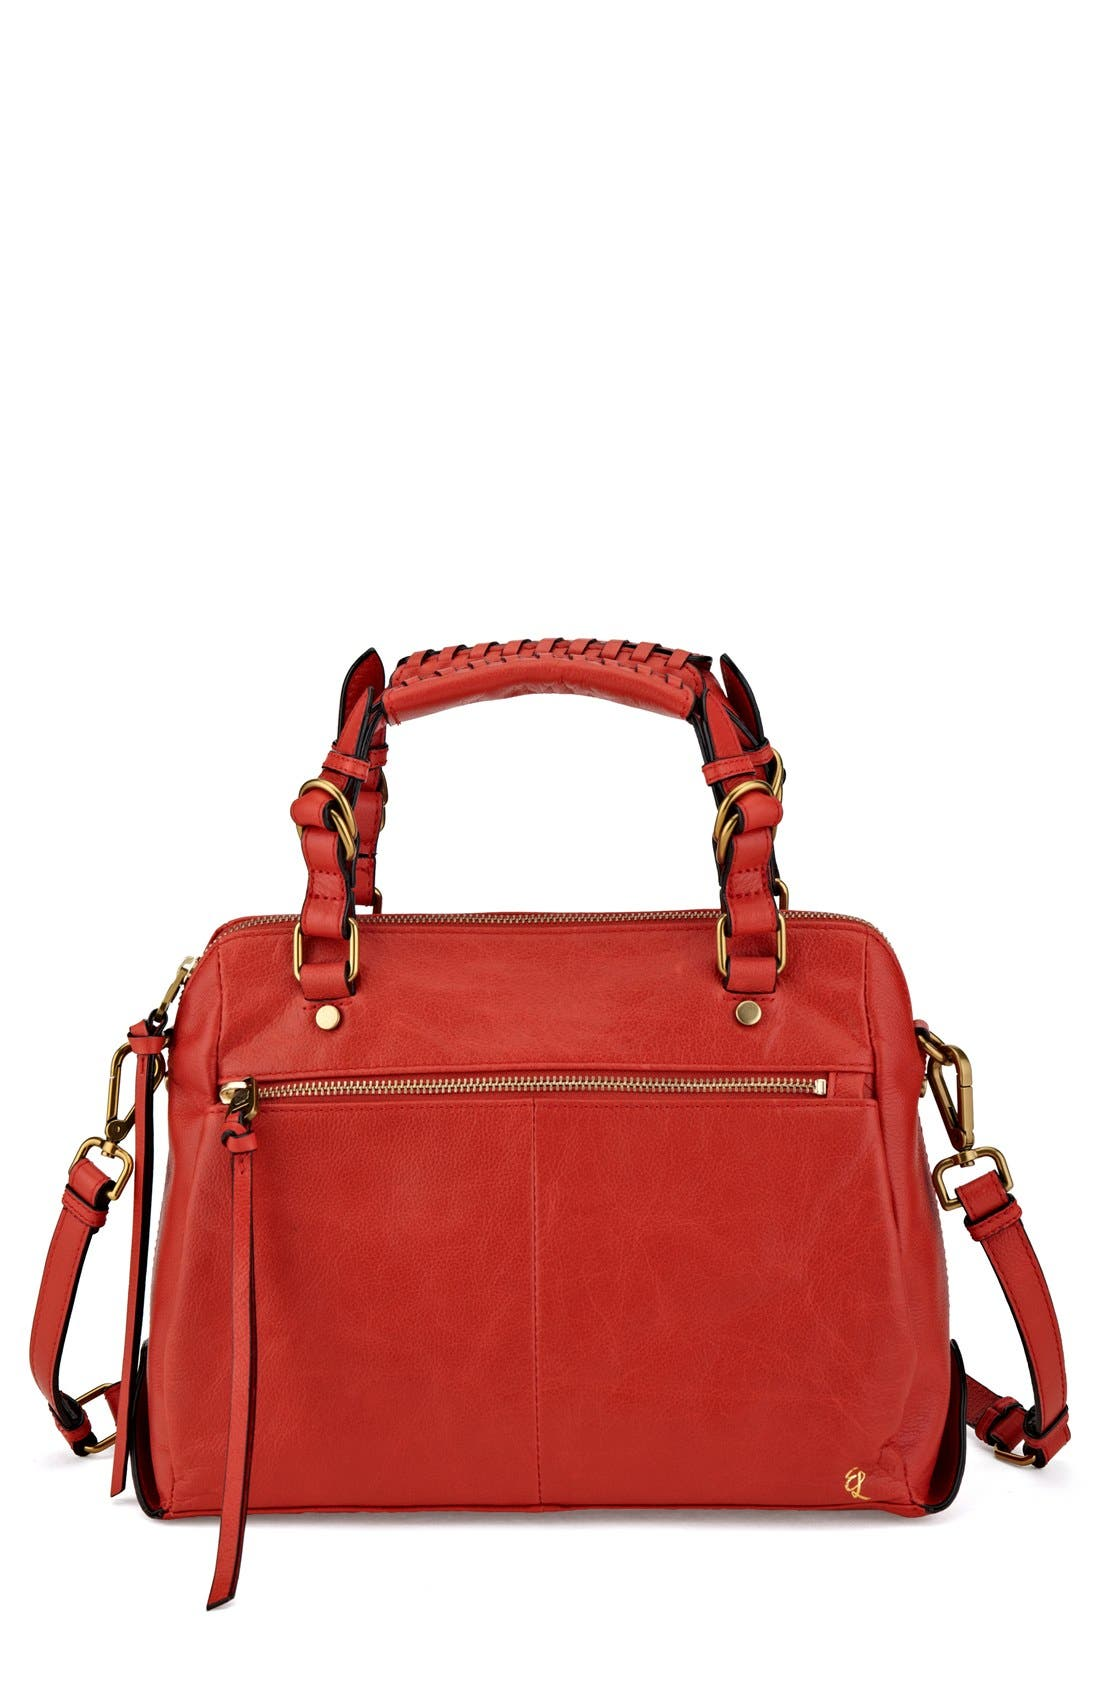 Alternate Image 1 Selected - Elliott Lucca 'Olvera' Satchel